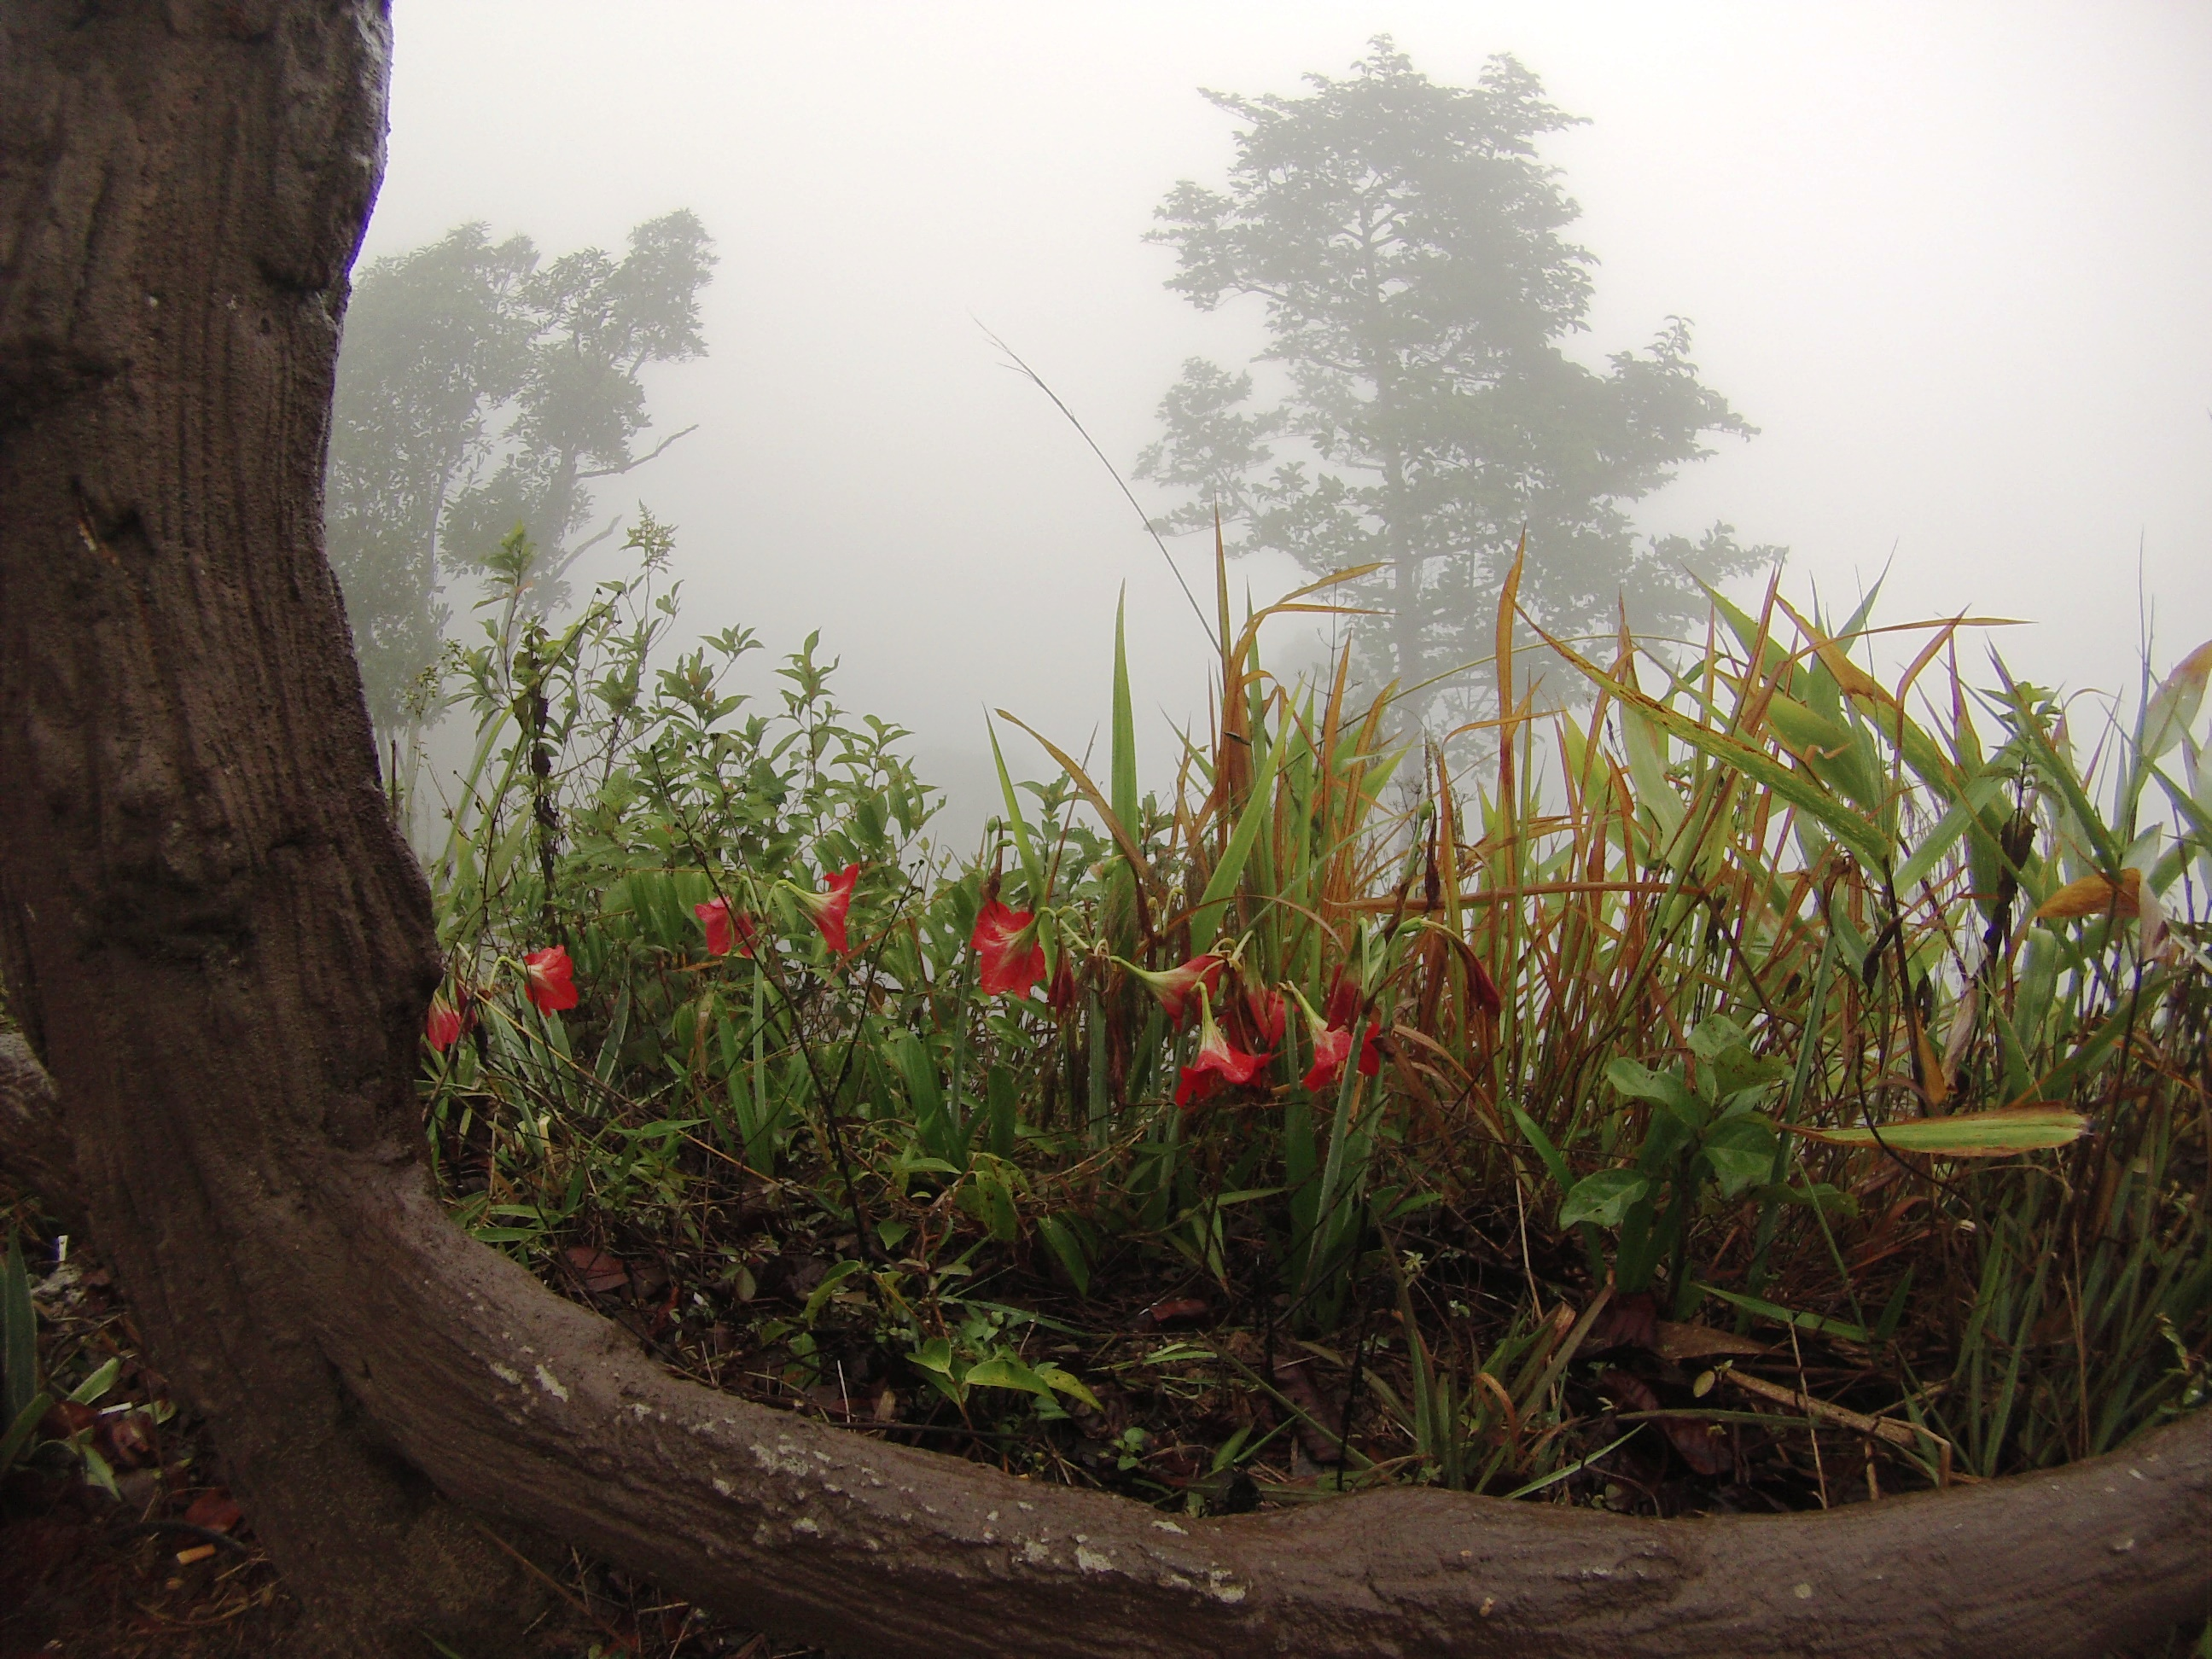 Phu Rea National Park in the Fog, March 2015